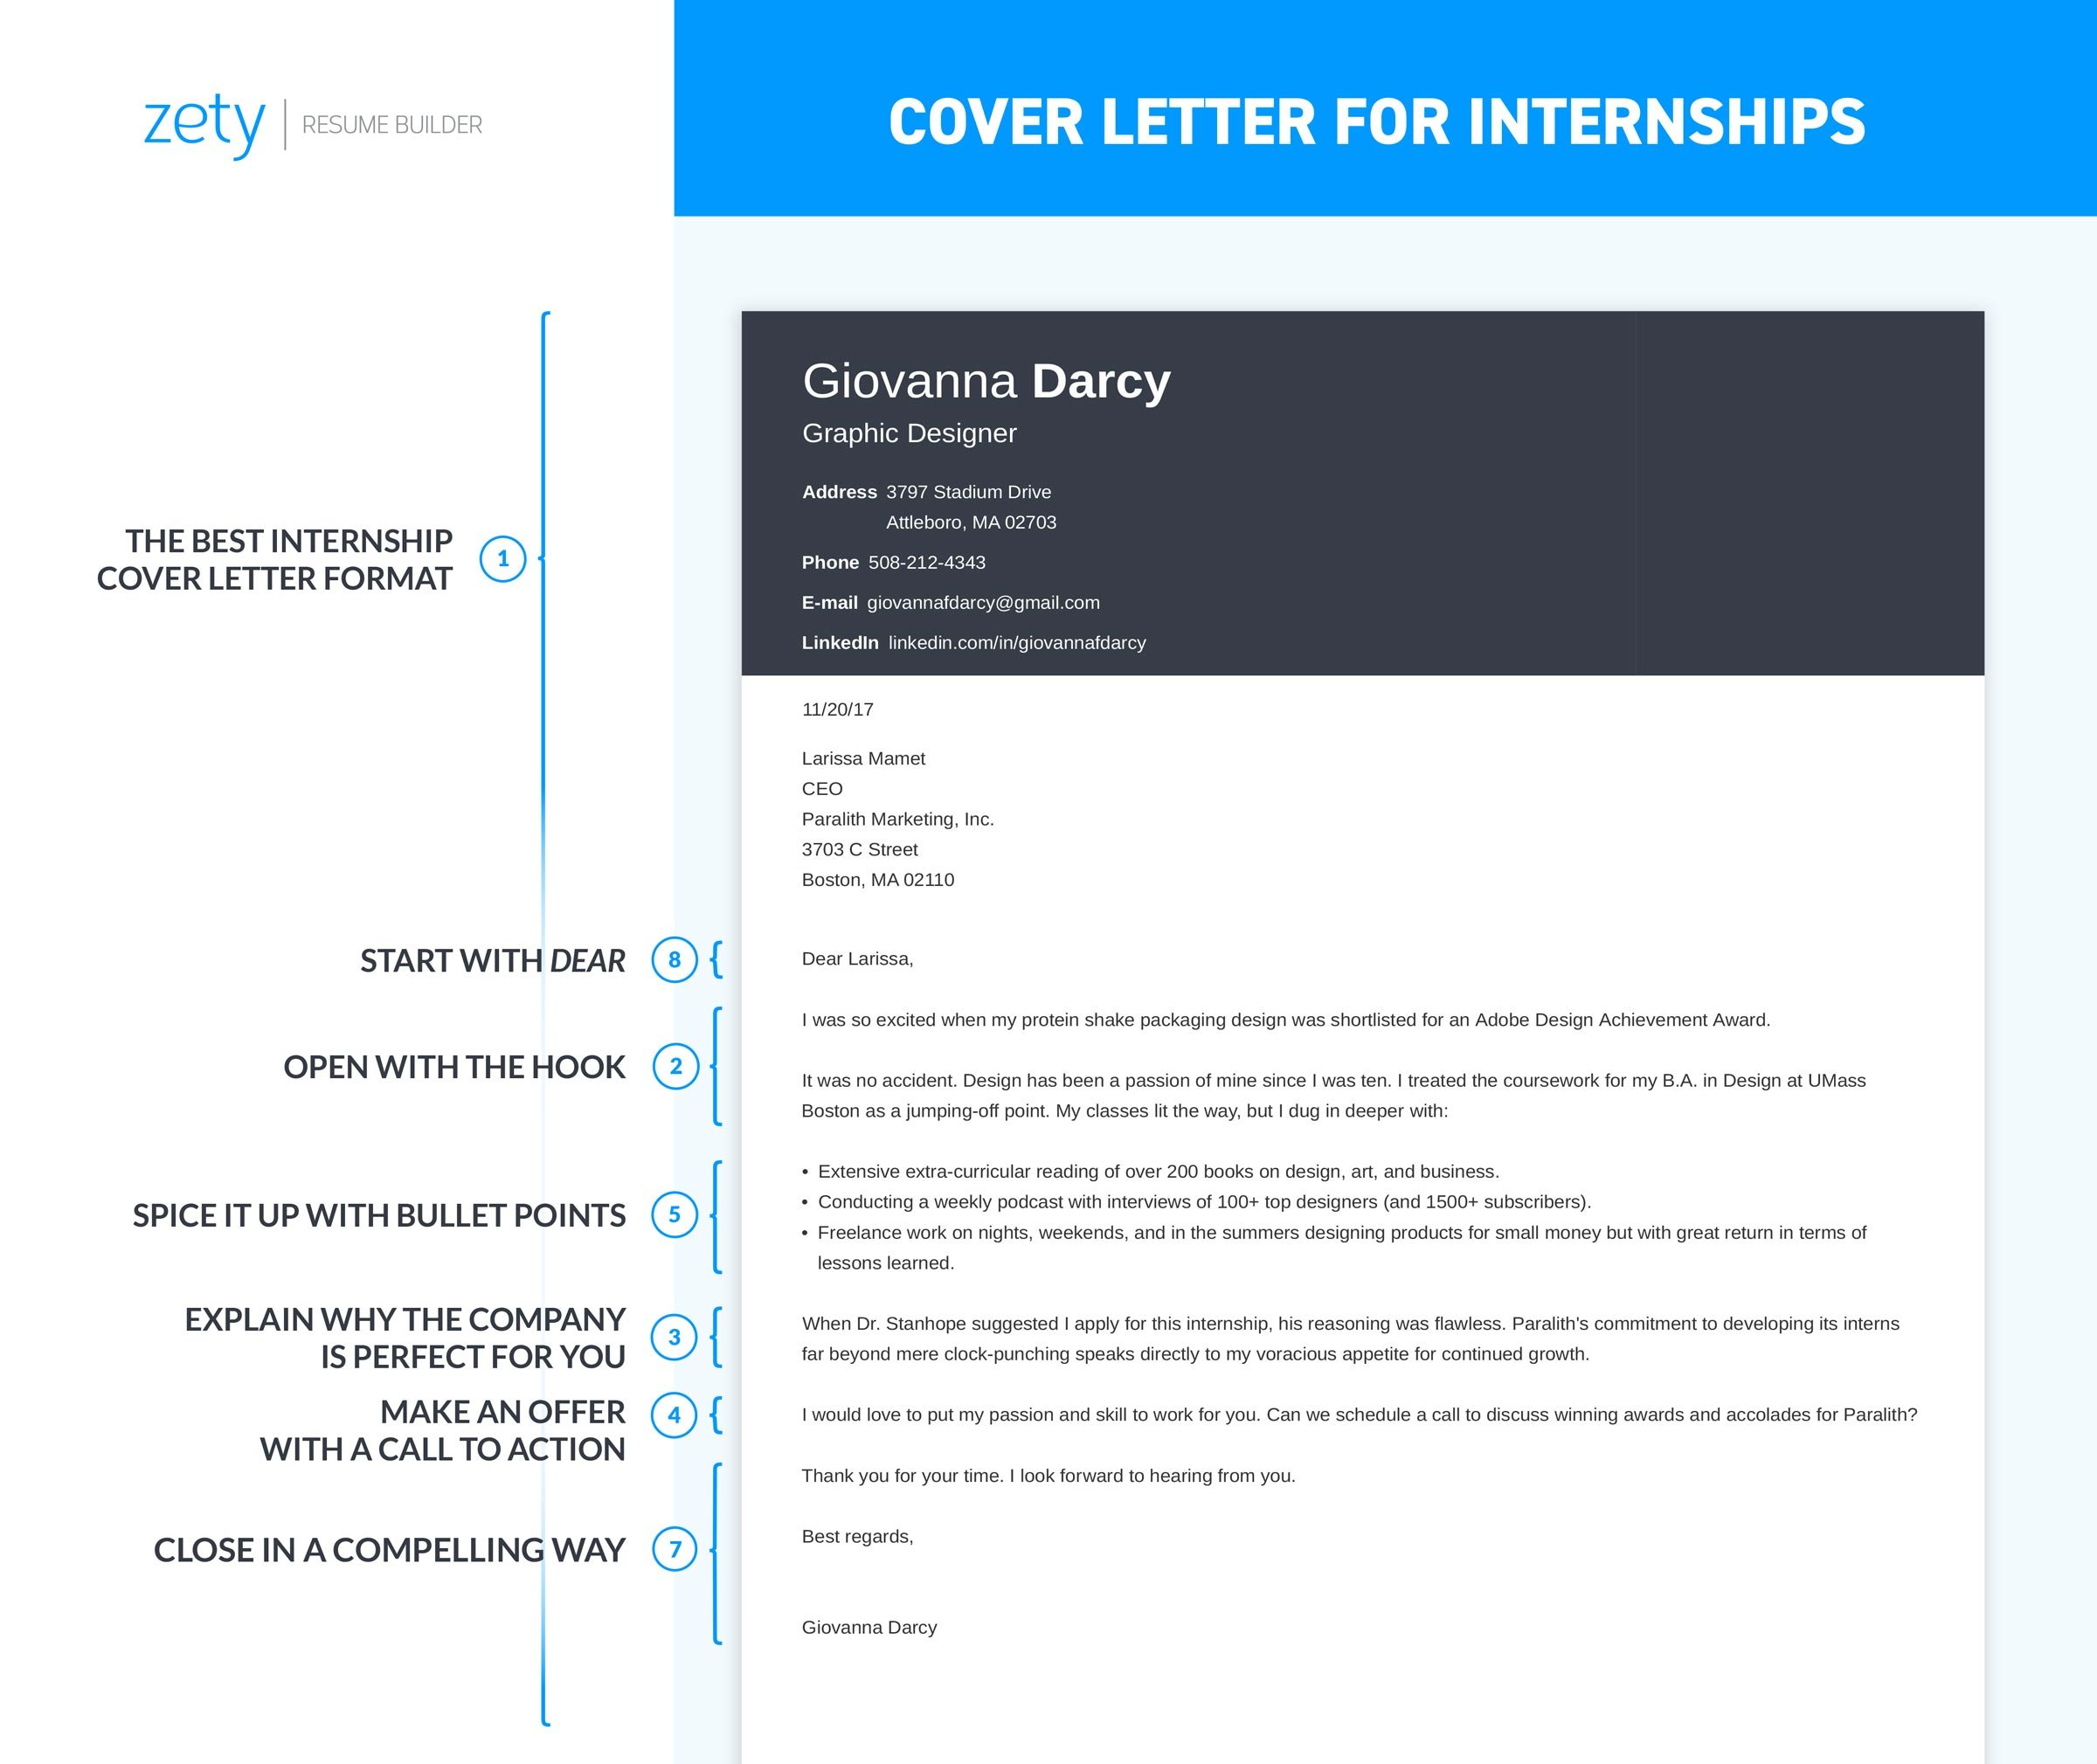 how to start a cover letter email - how to write a cover letter for an internship 20 examples